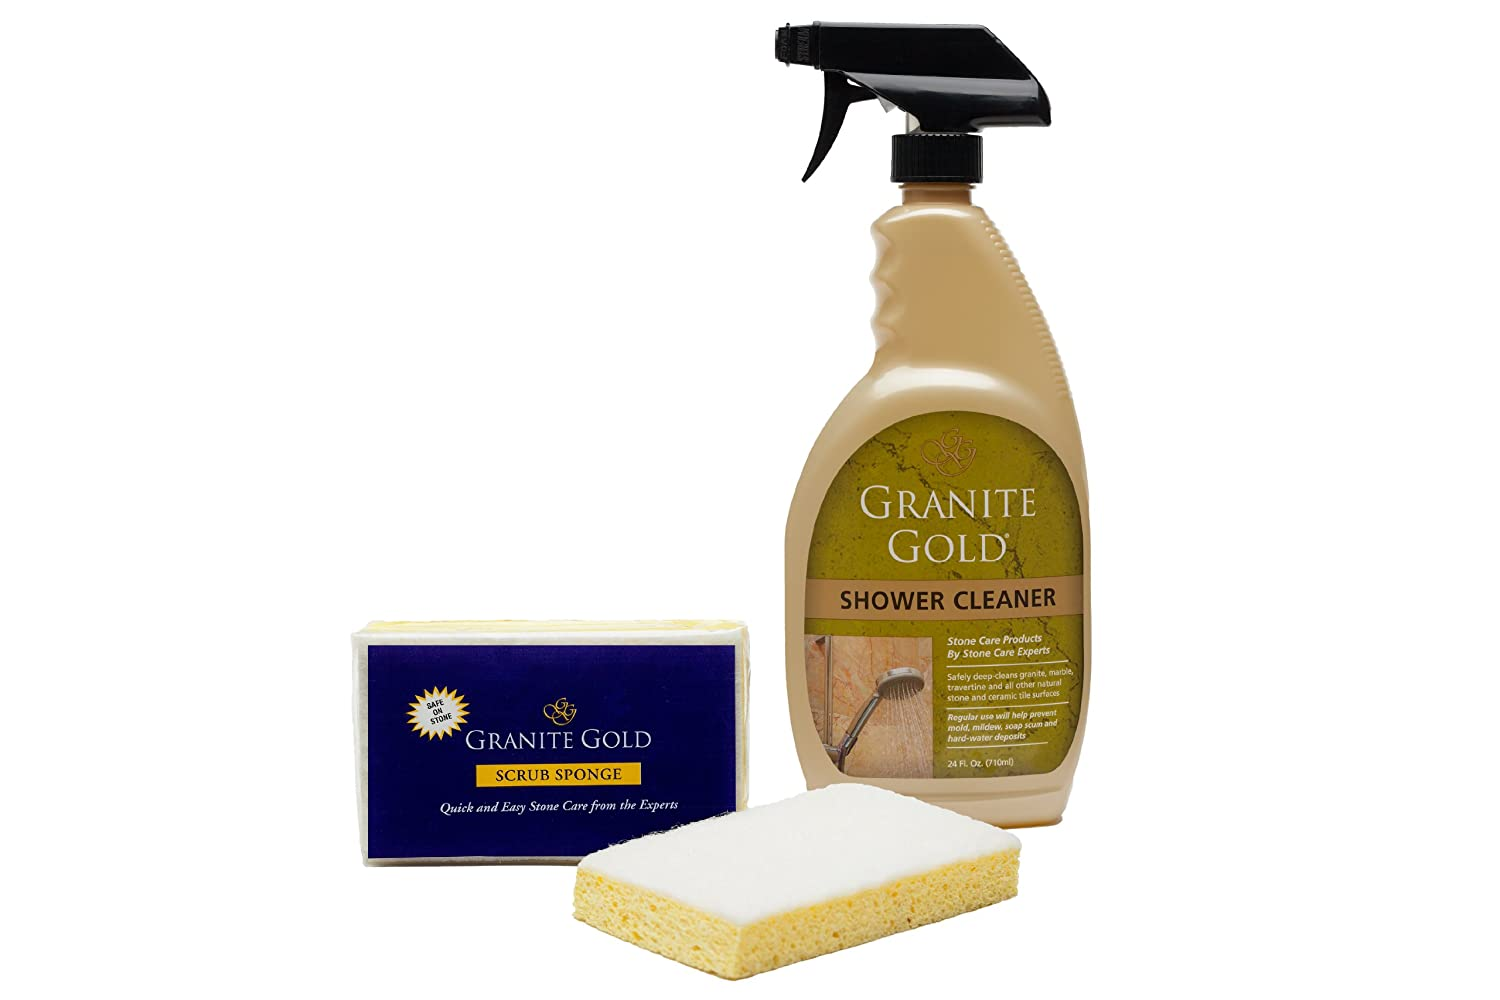 Amazon granite gold shower cleaner stone shower cleaner for amazon granite gold shower cleaner stone shower cleaner for marble travertine quartz and tile 24 oz home kitchen dailygadgetfo Gallery